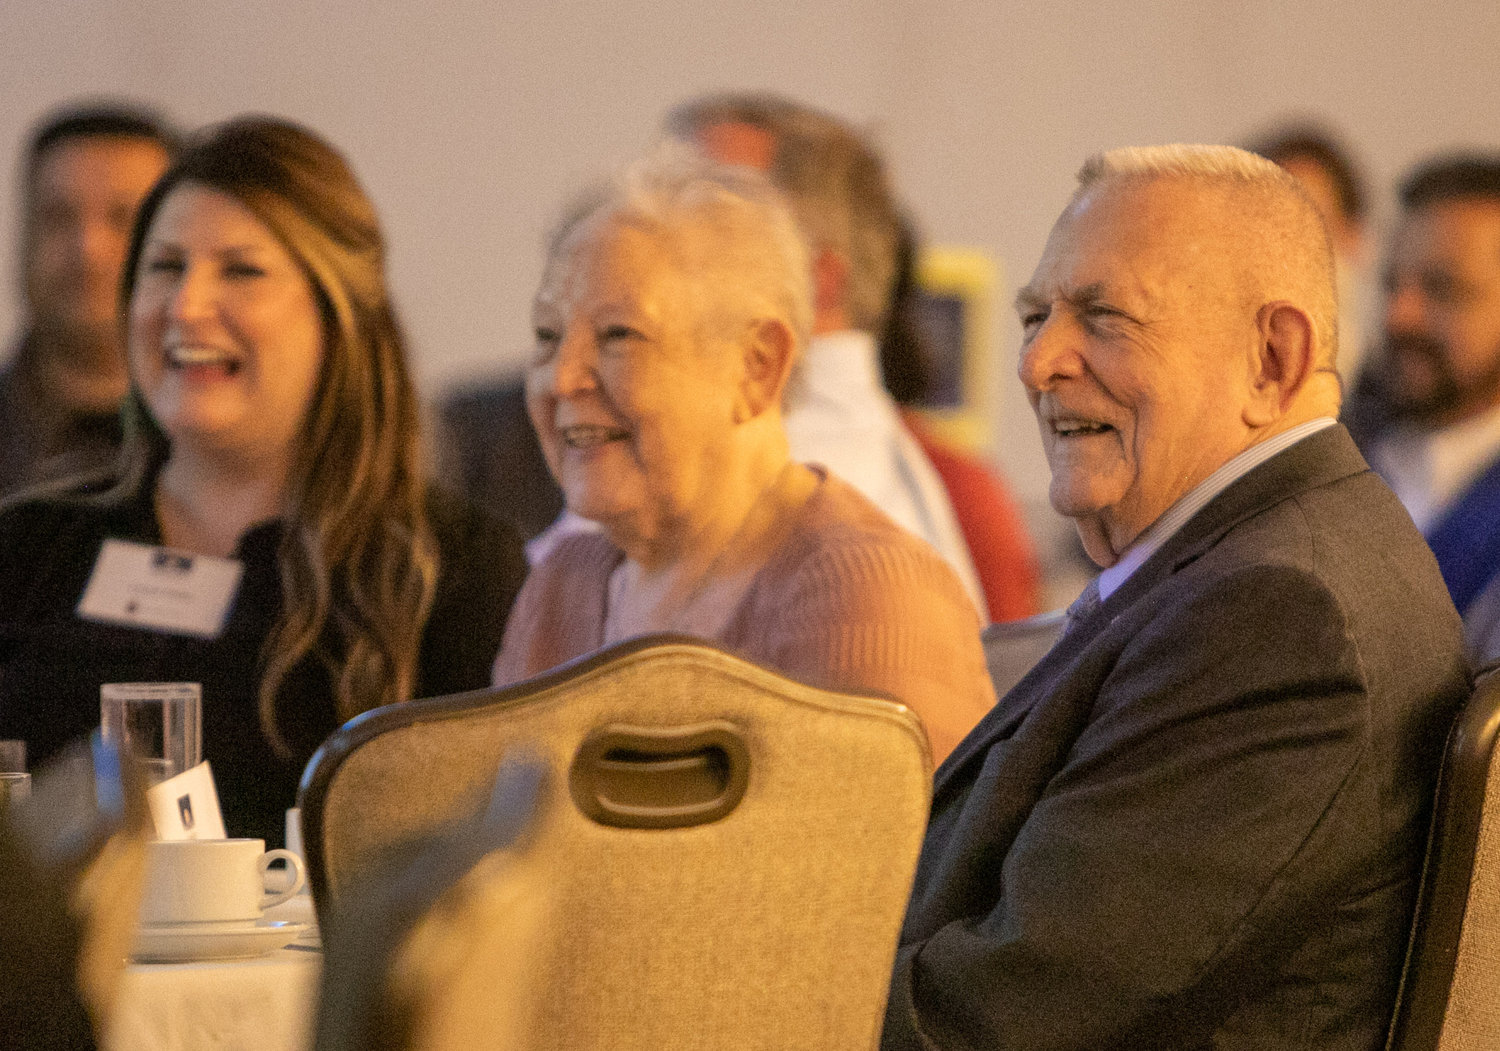 Gene Kranz, right, former flight director for Apollo 11, smiles alongside his wife, Marta, during the 2019 Archdiocese of Galveston-Houston Prayer Breakfast in Houston July 30. Gene Kranz, who served as the event's speaker, is a parishioner at Shrine of the True Cross Catholic Church in Dickinson, Texas, near Houston.